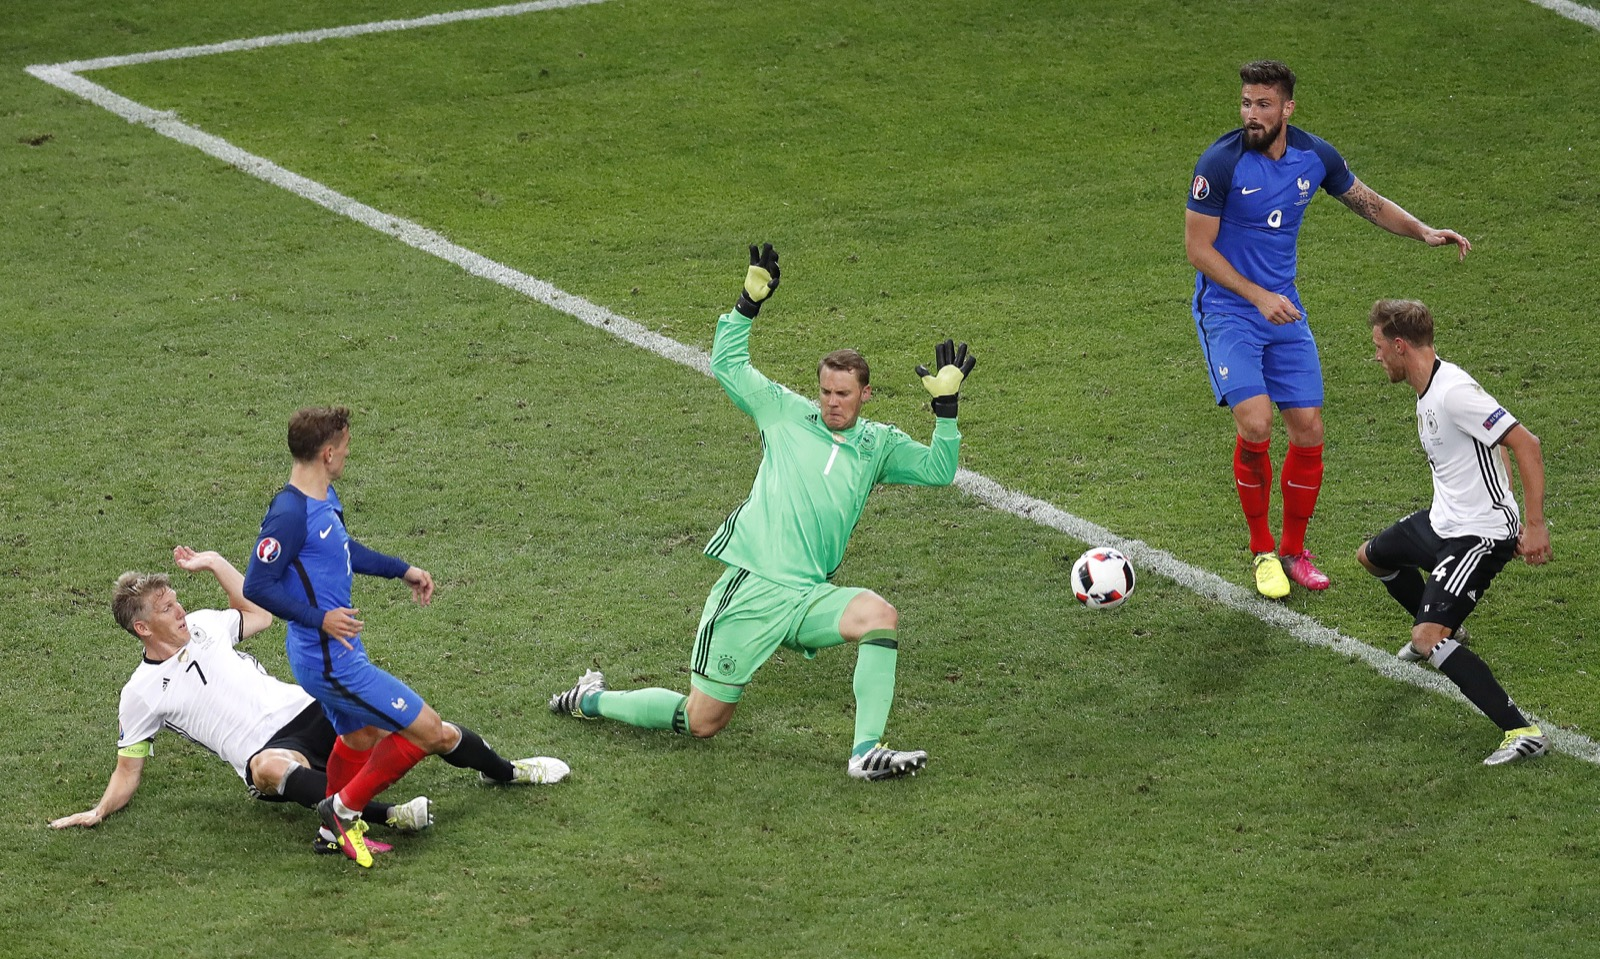 France Shuts Out Germany to Advance to Euro 2016 Final: Pictures